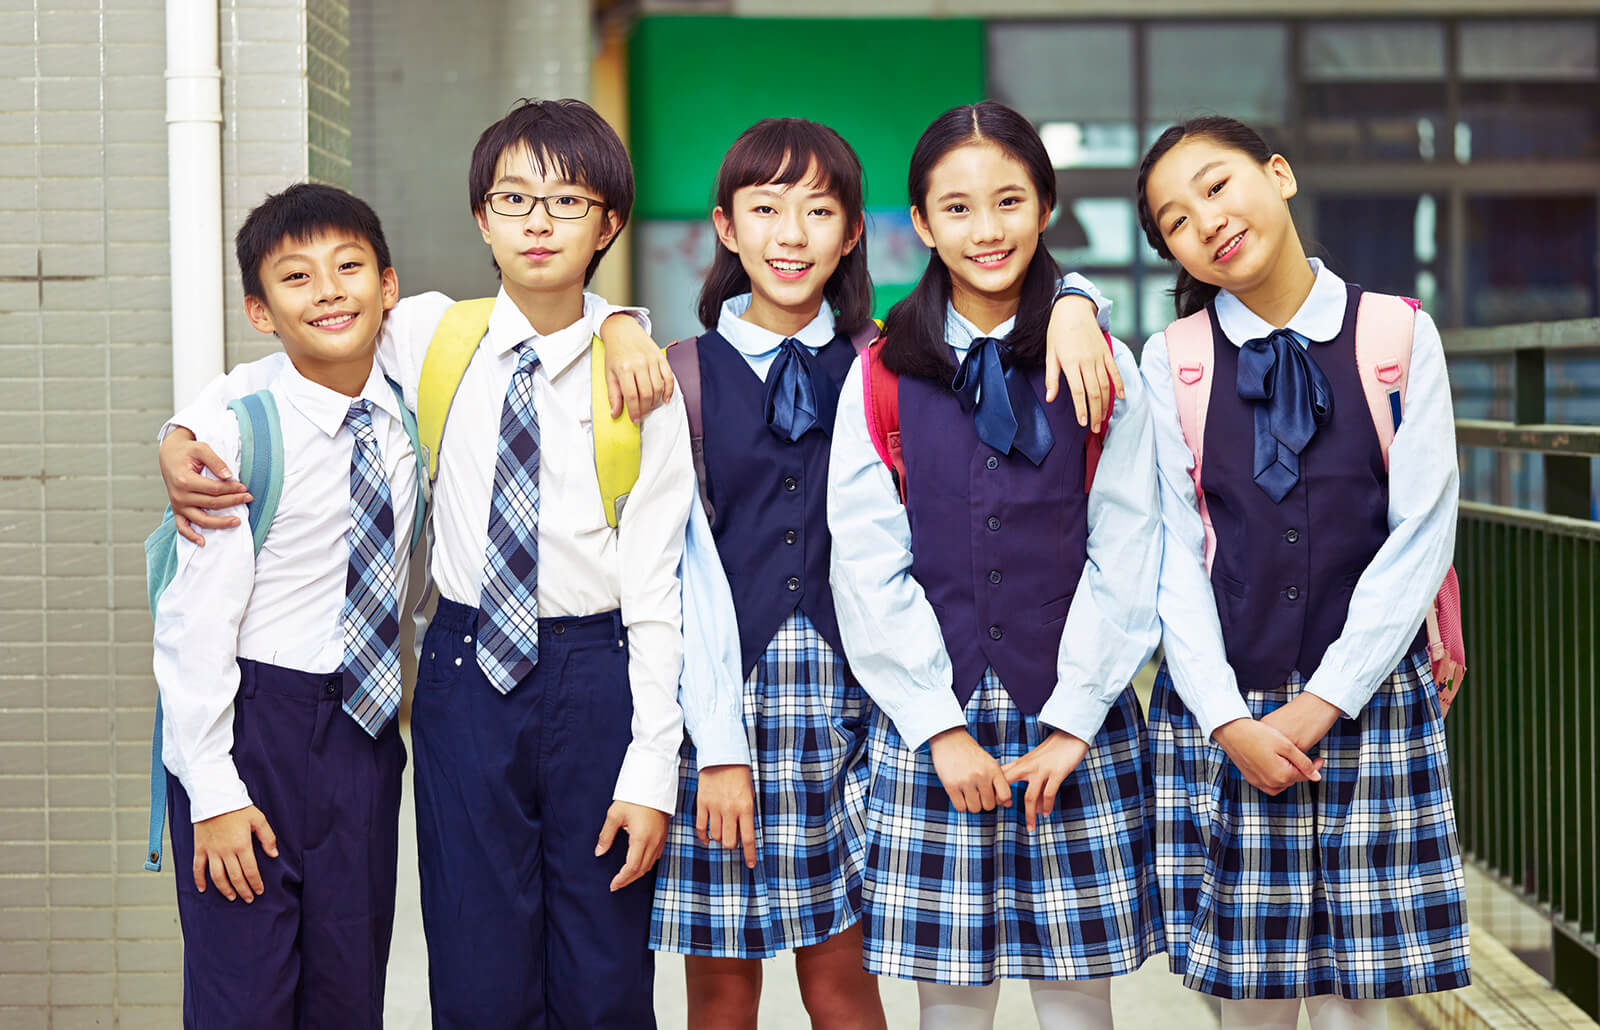 Korean School Uniforms Overview  LoveToKnow